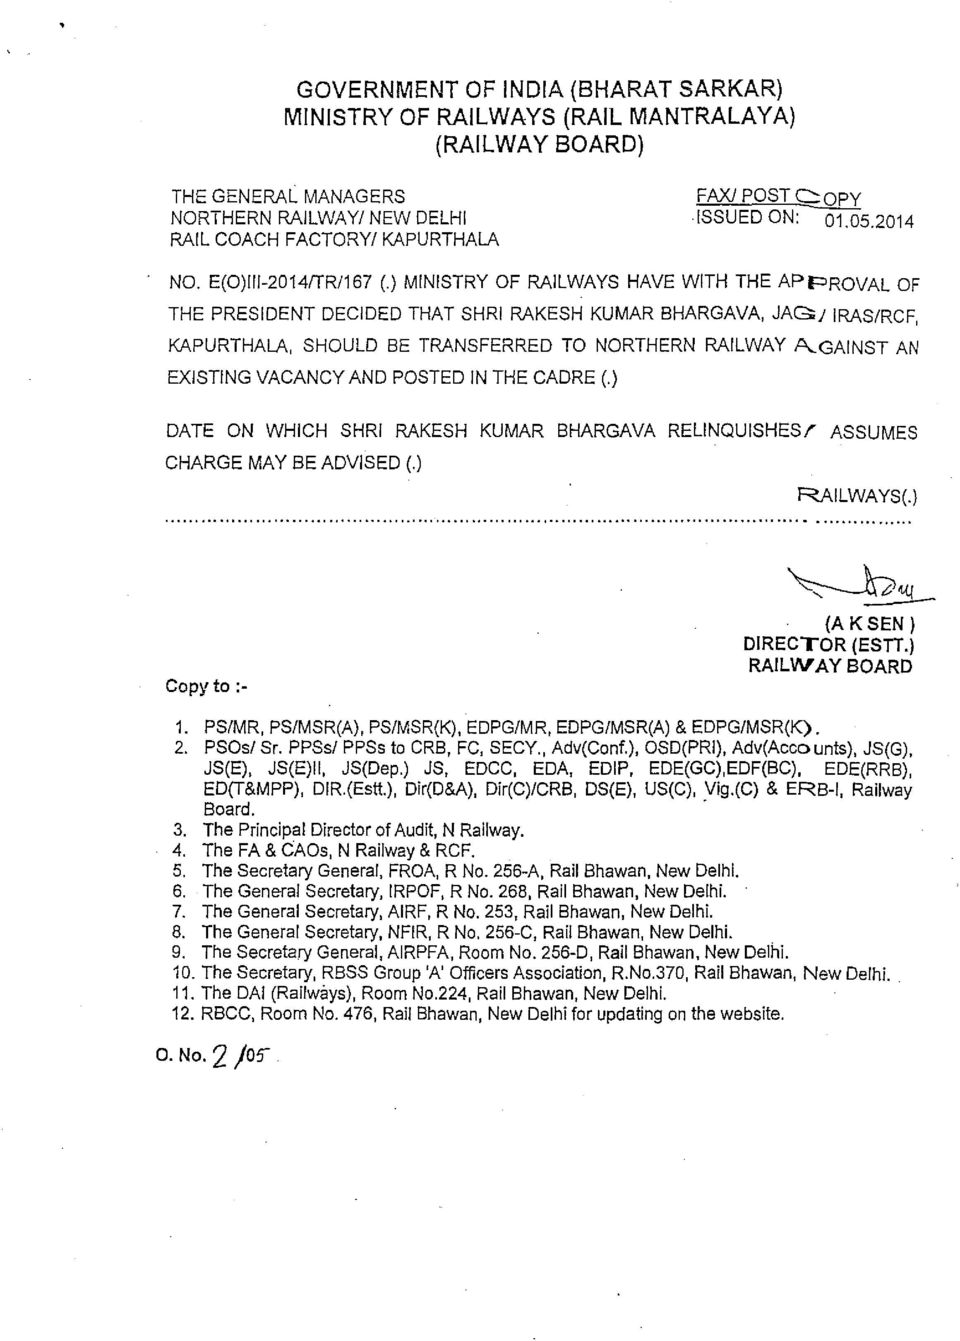 VACANCY AND POSTED IN THE CADRE (.) DATE ON WHICH SHRI RAKESH KUMAR BHARGAVA RELINQUISHES/ ASSUMES CHARGE MAY BE ADVISED (.) RAILWAYS(.) Copy to :- 2. PSOs/ Sr. PPSs/ PPSs to CRB, FC, SECY., Adv(Conf.